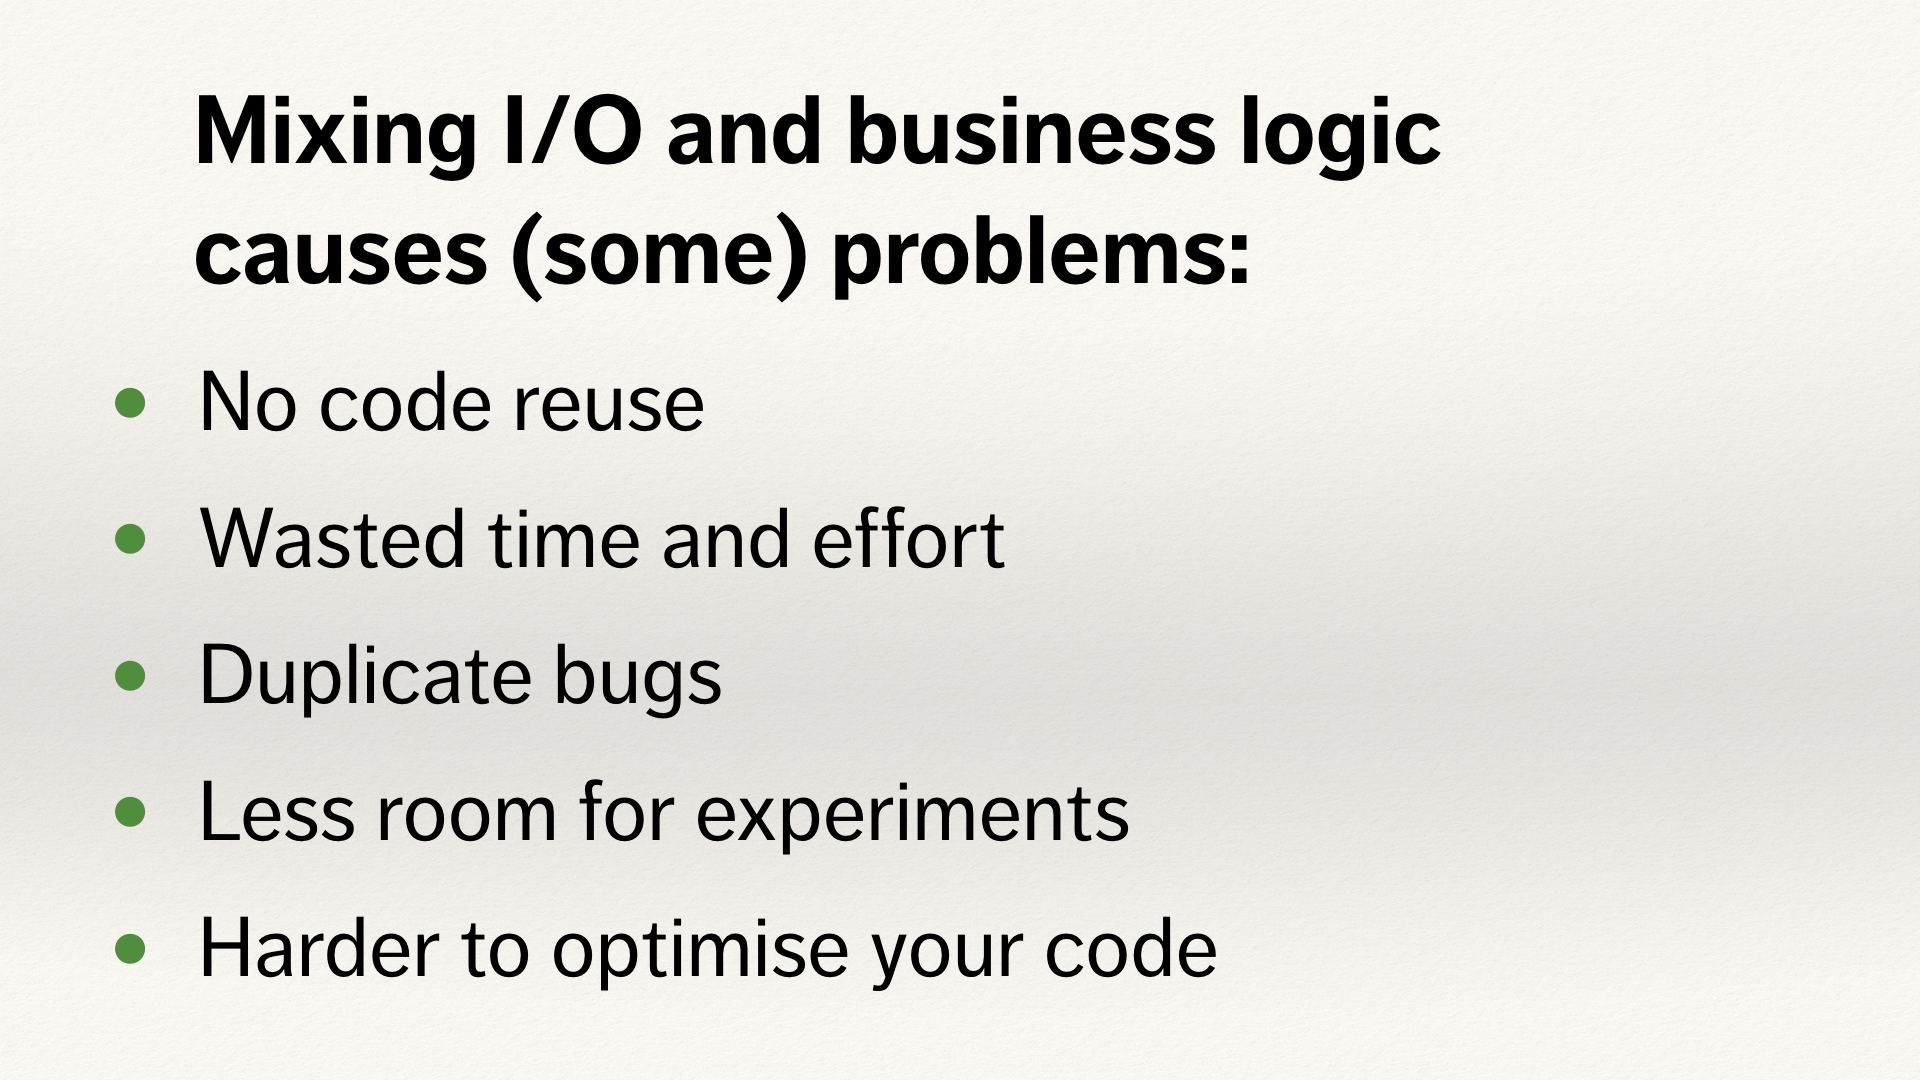 Summary slide, with a list of the problems of mixing I/O and business logic.